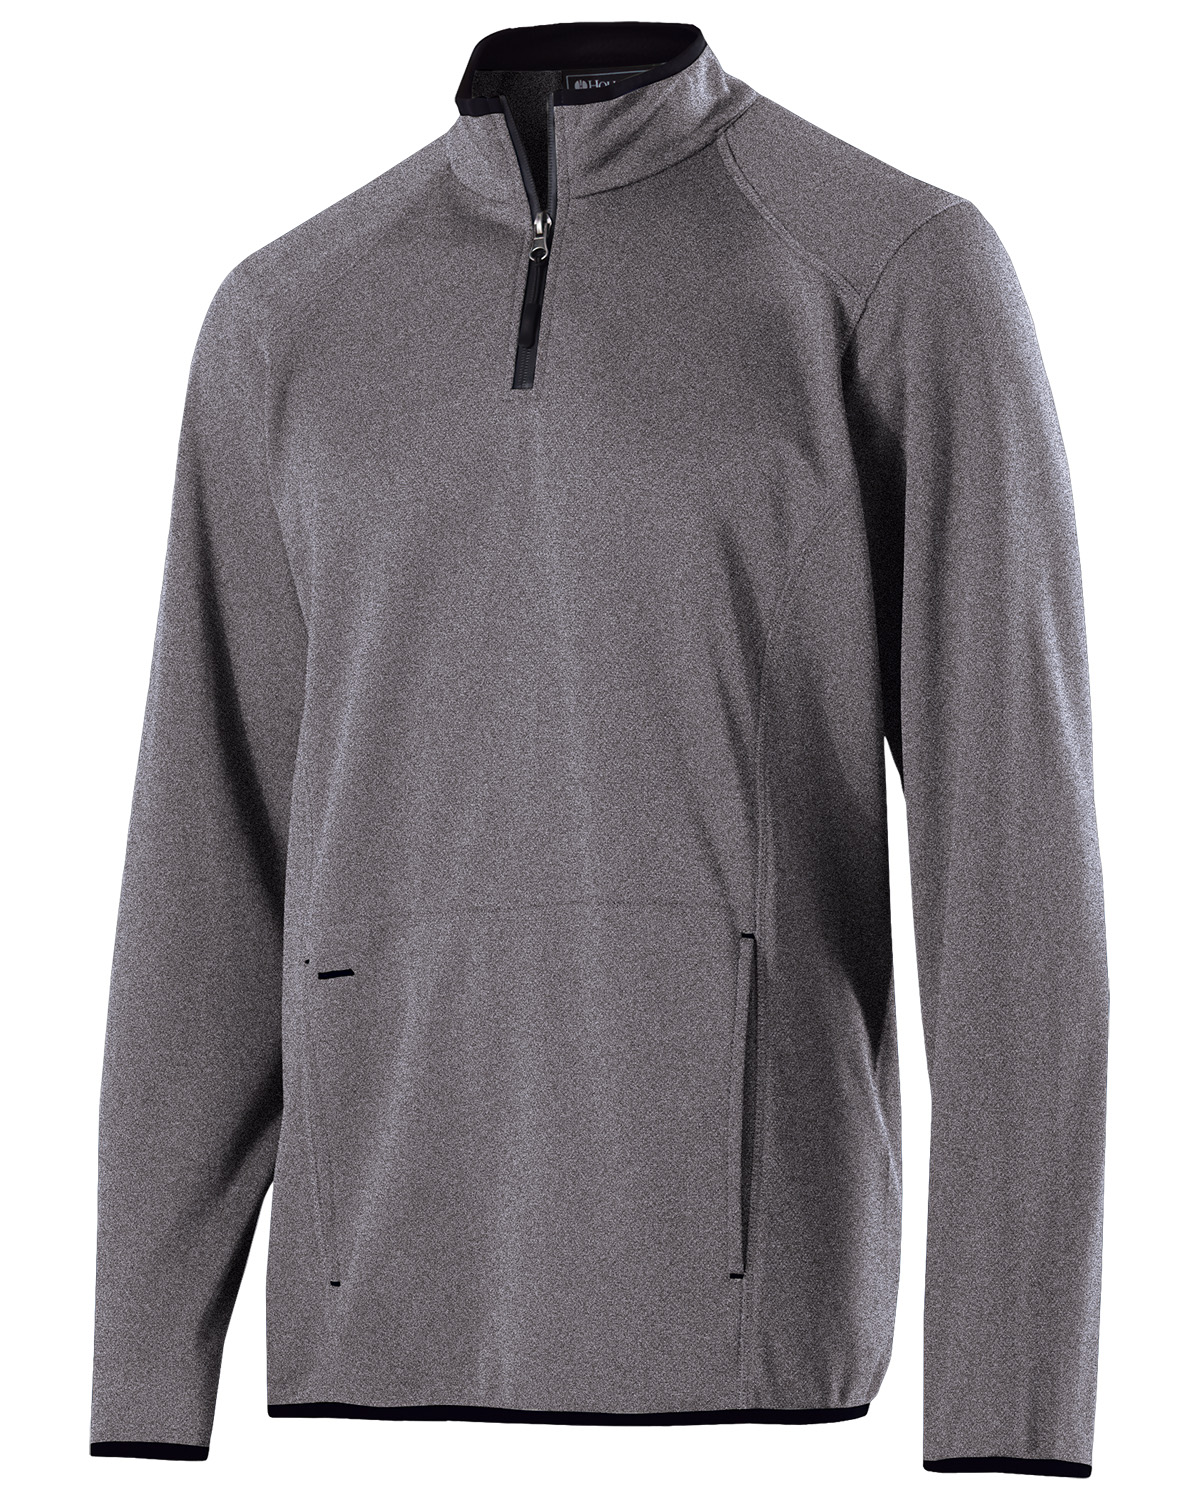 Holloway 229176 - Adult Polyester Fleece 1/4 Zip Artillery Pullover